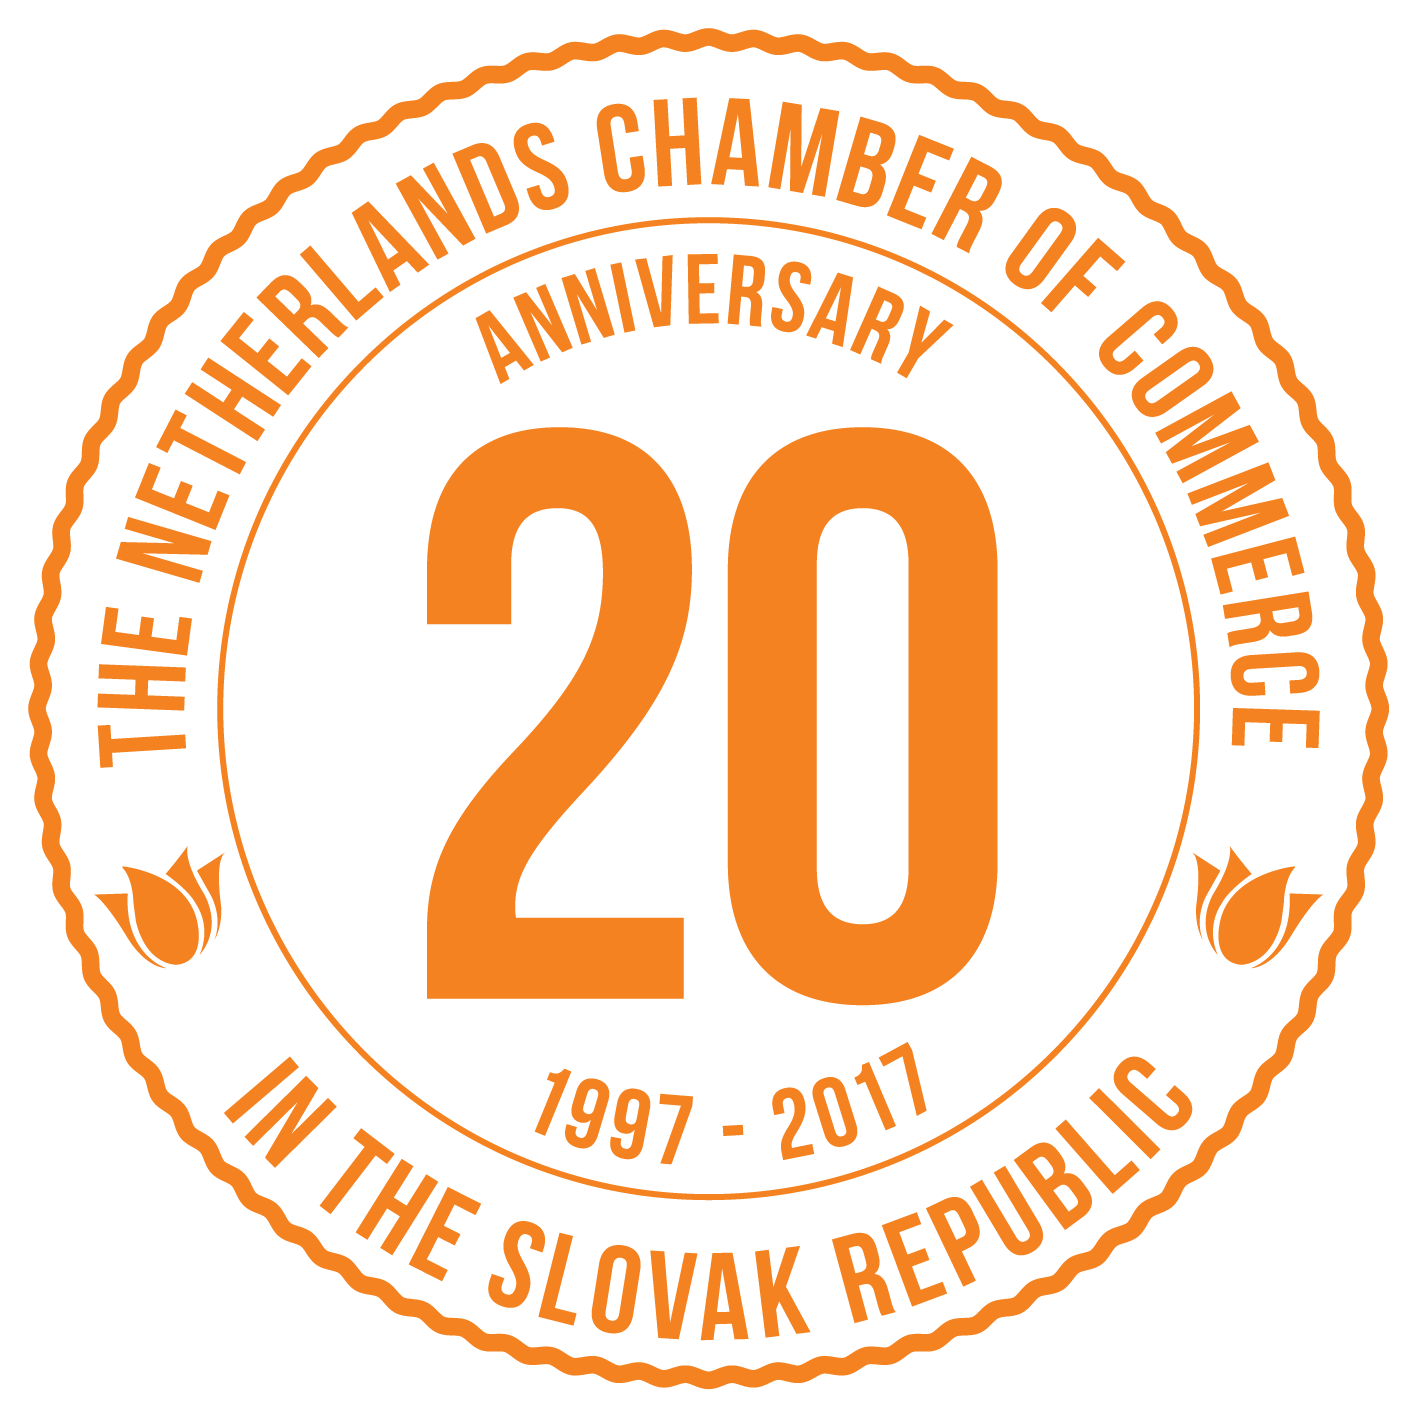 20-anniversary-logo.png